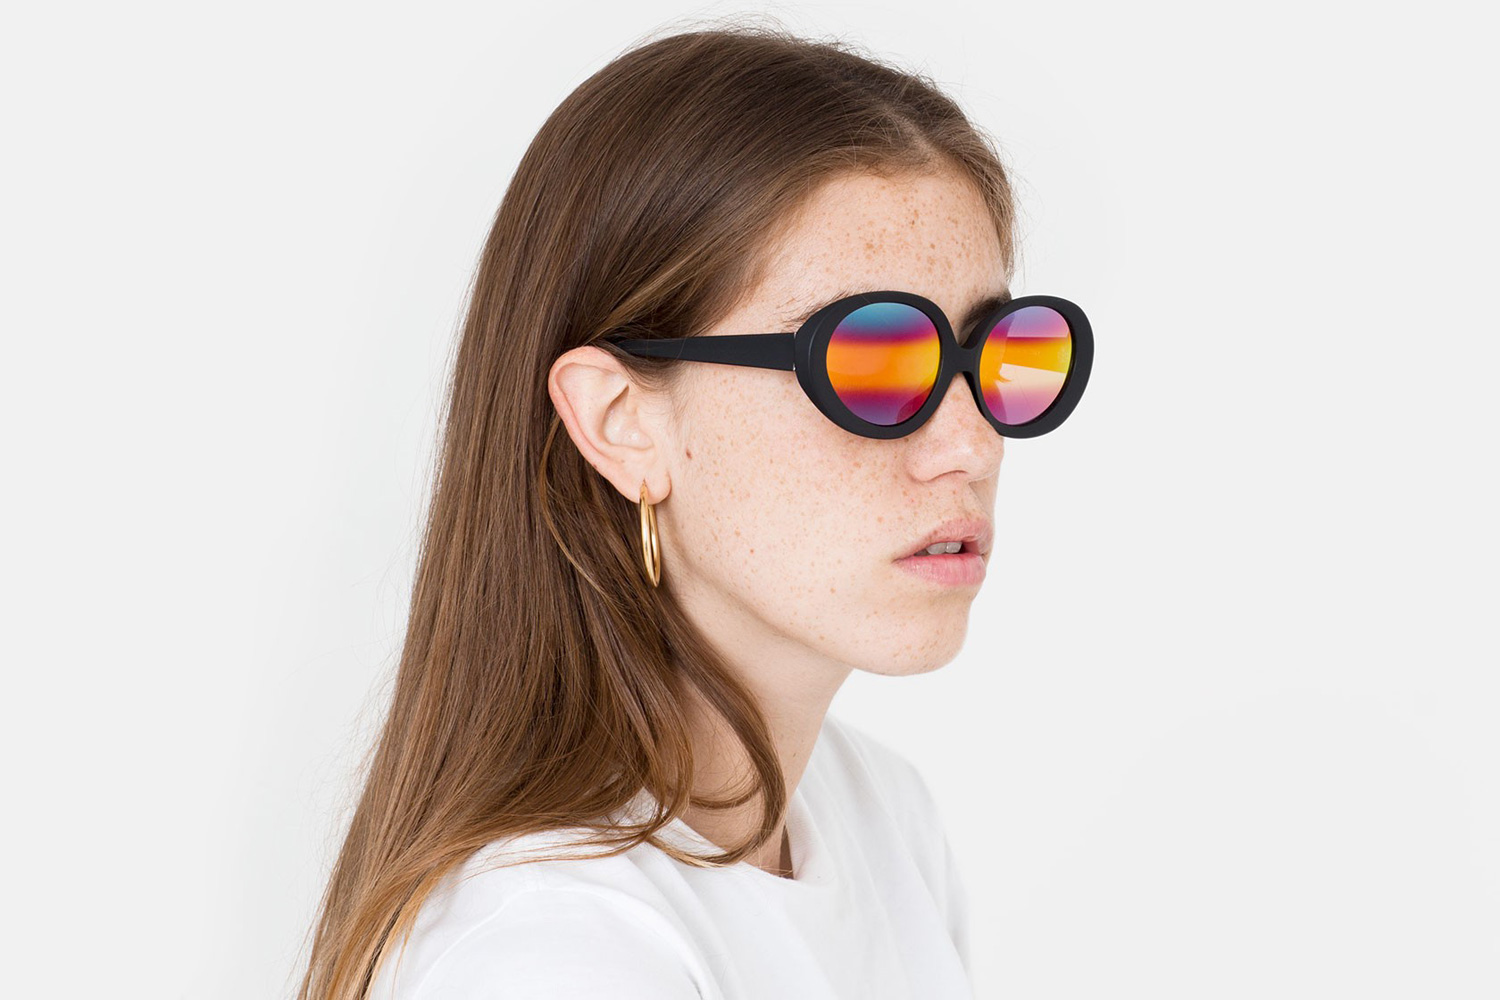 RETROSUPERFUTURE Releases a Groovy Pair of Rainbow-Colored Sunglasses